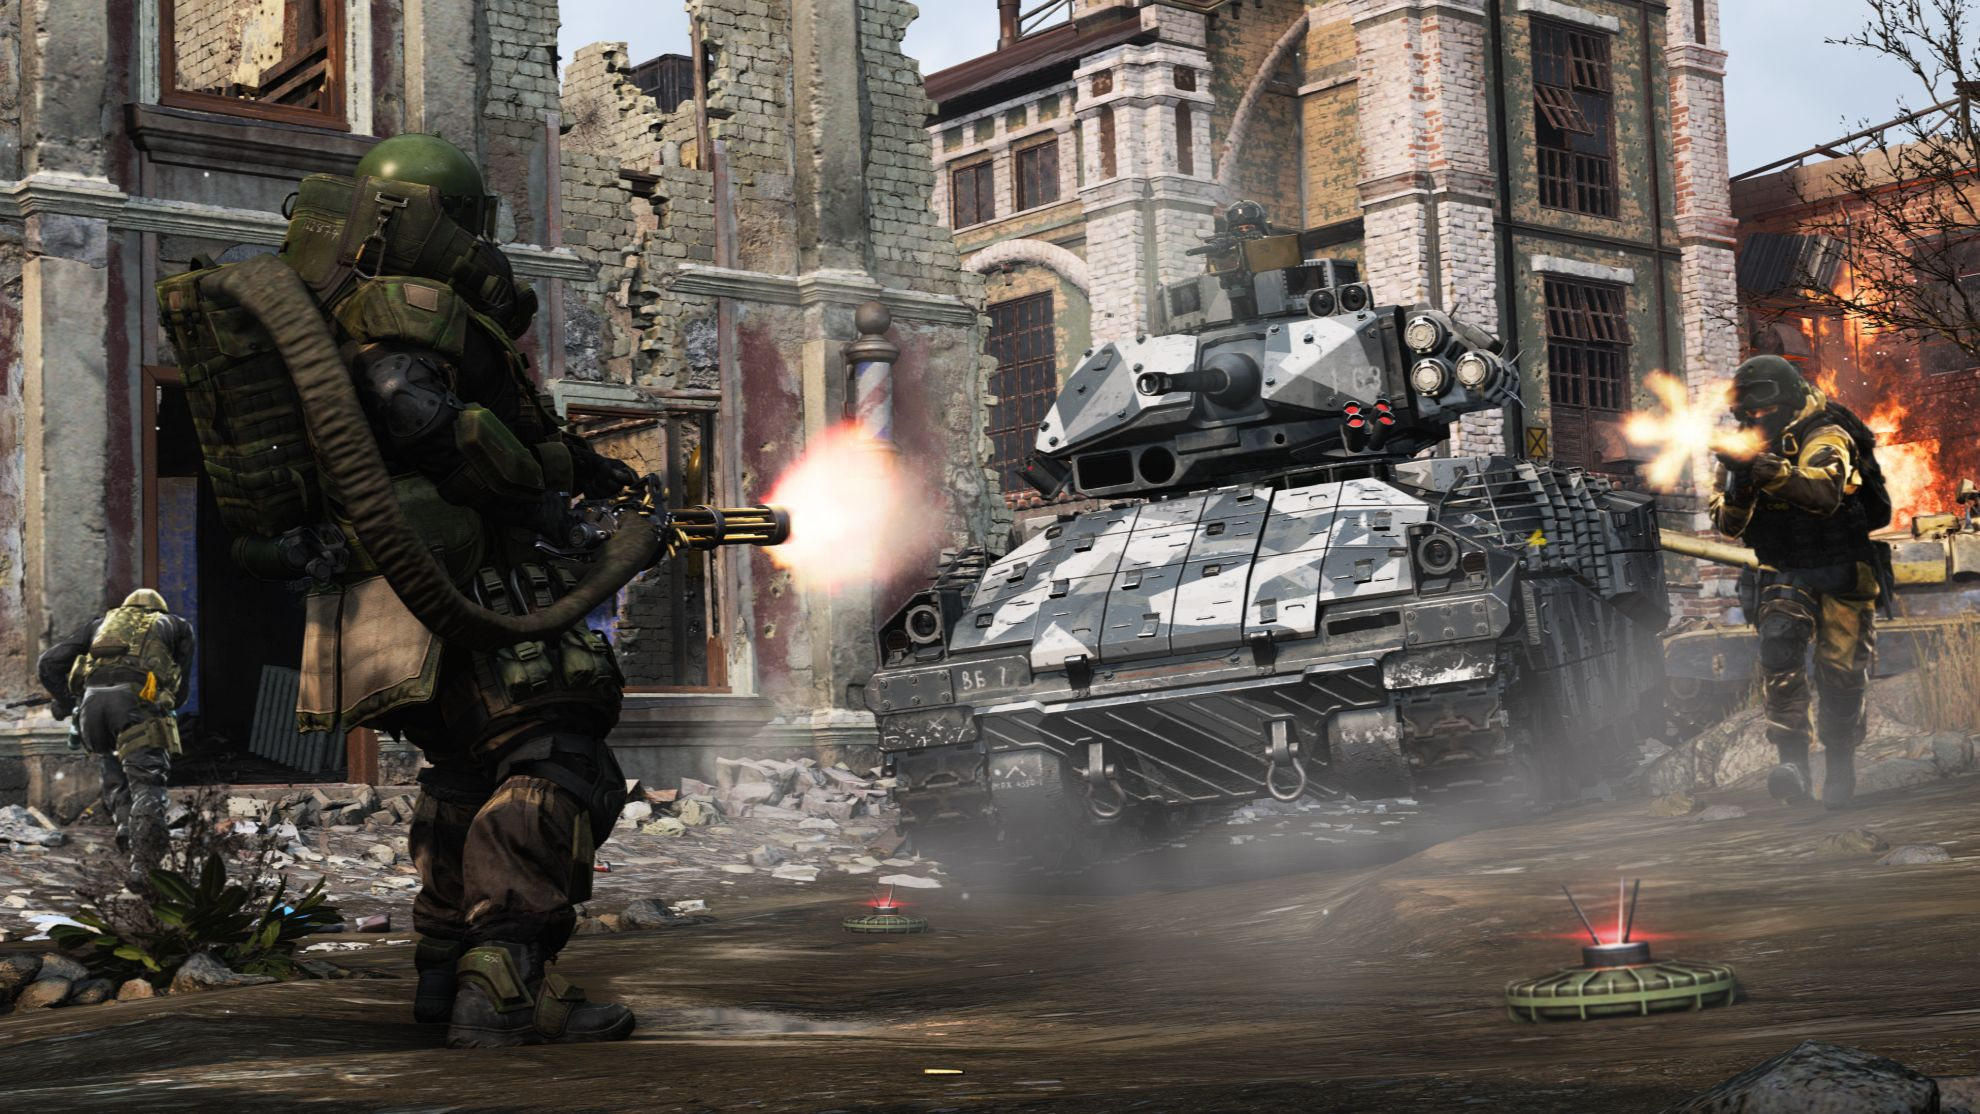 COD Modern Warfare 2019 uses darkness, recoil, and ATVs to